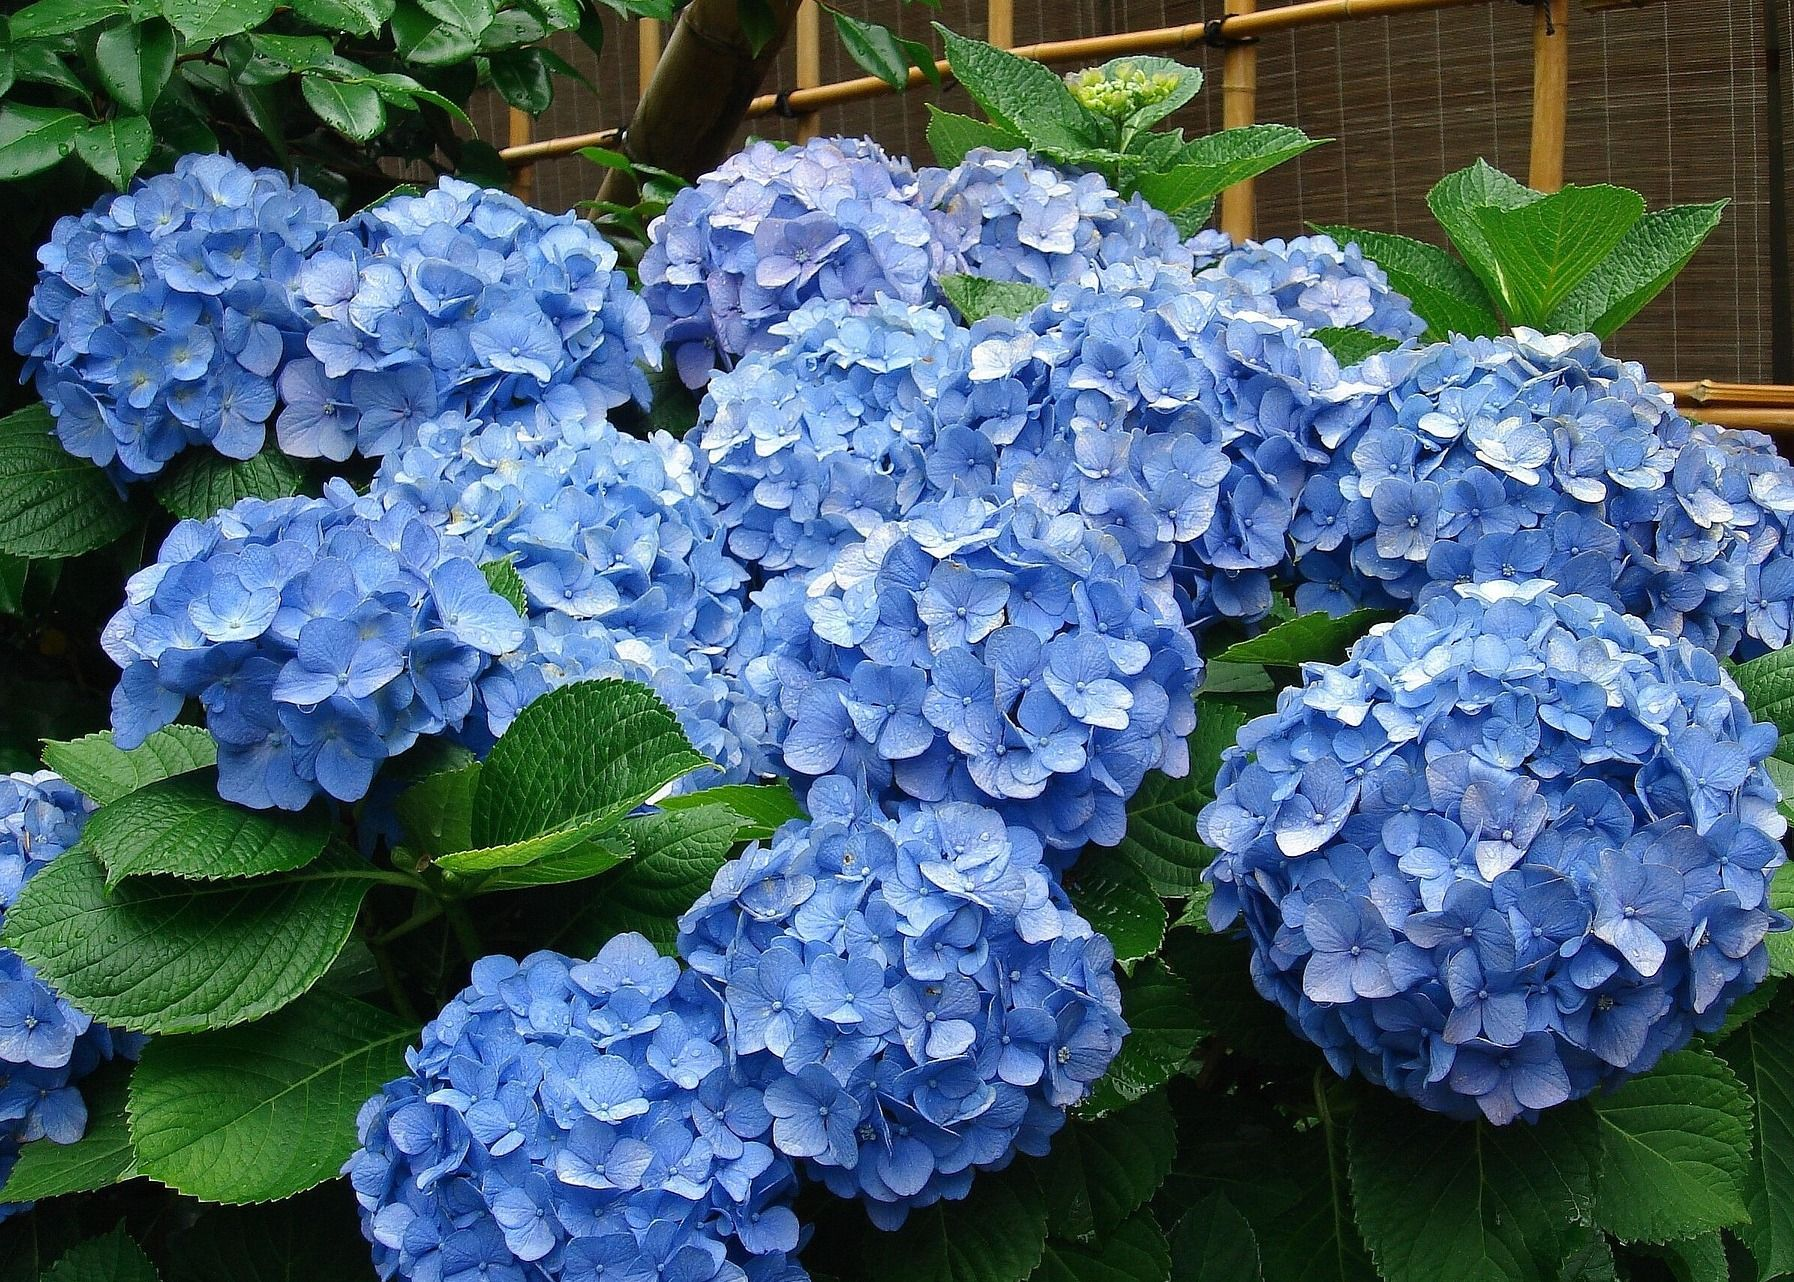 Hydrangea Care Tips When To Prune Different Hydrangea Varieties From The Old Farmer 39 S Almanac Blue Hydrangea Flowers Hydrangea Care Hydrangea Varieties